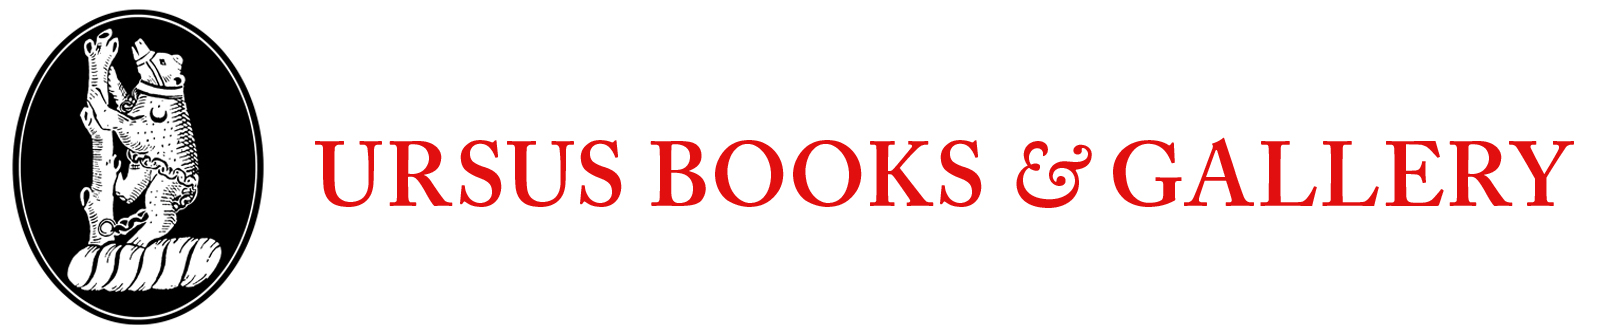 Ursus Books, Ltd.